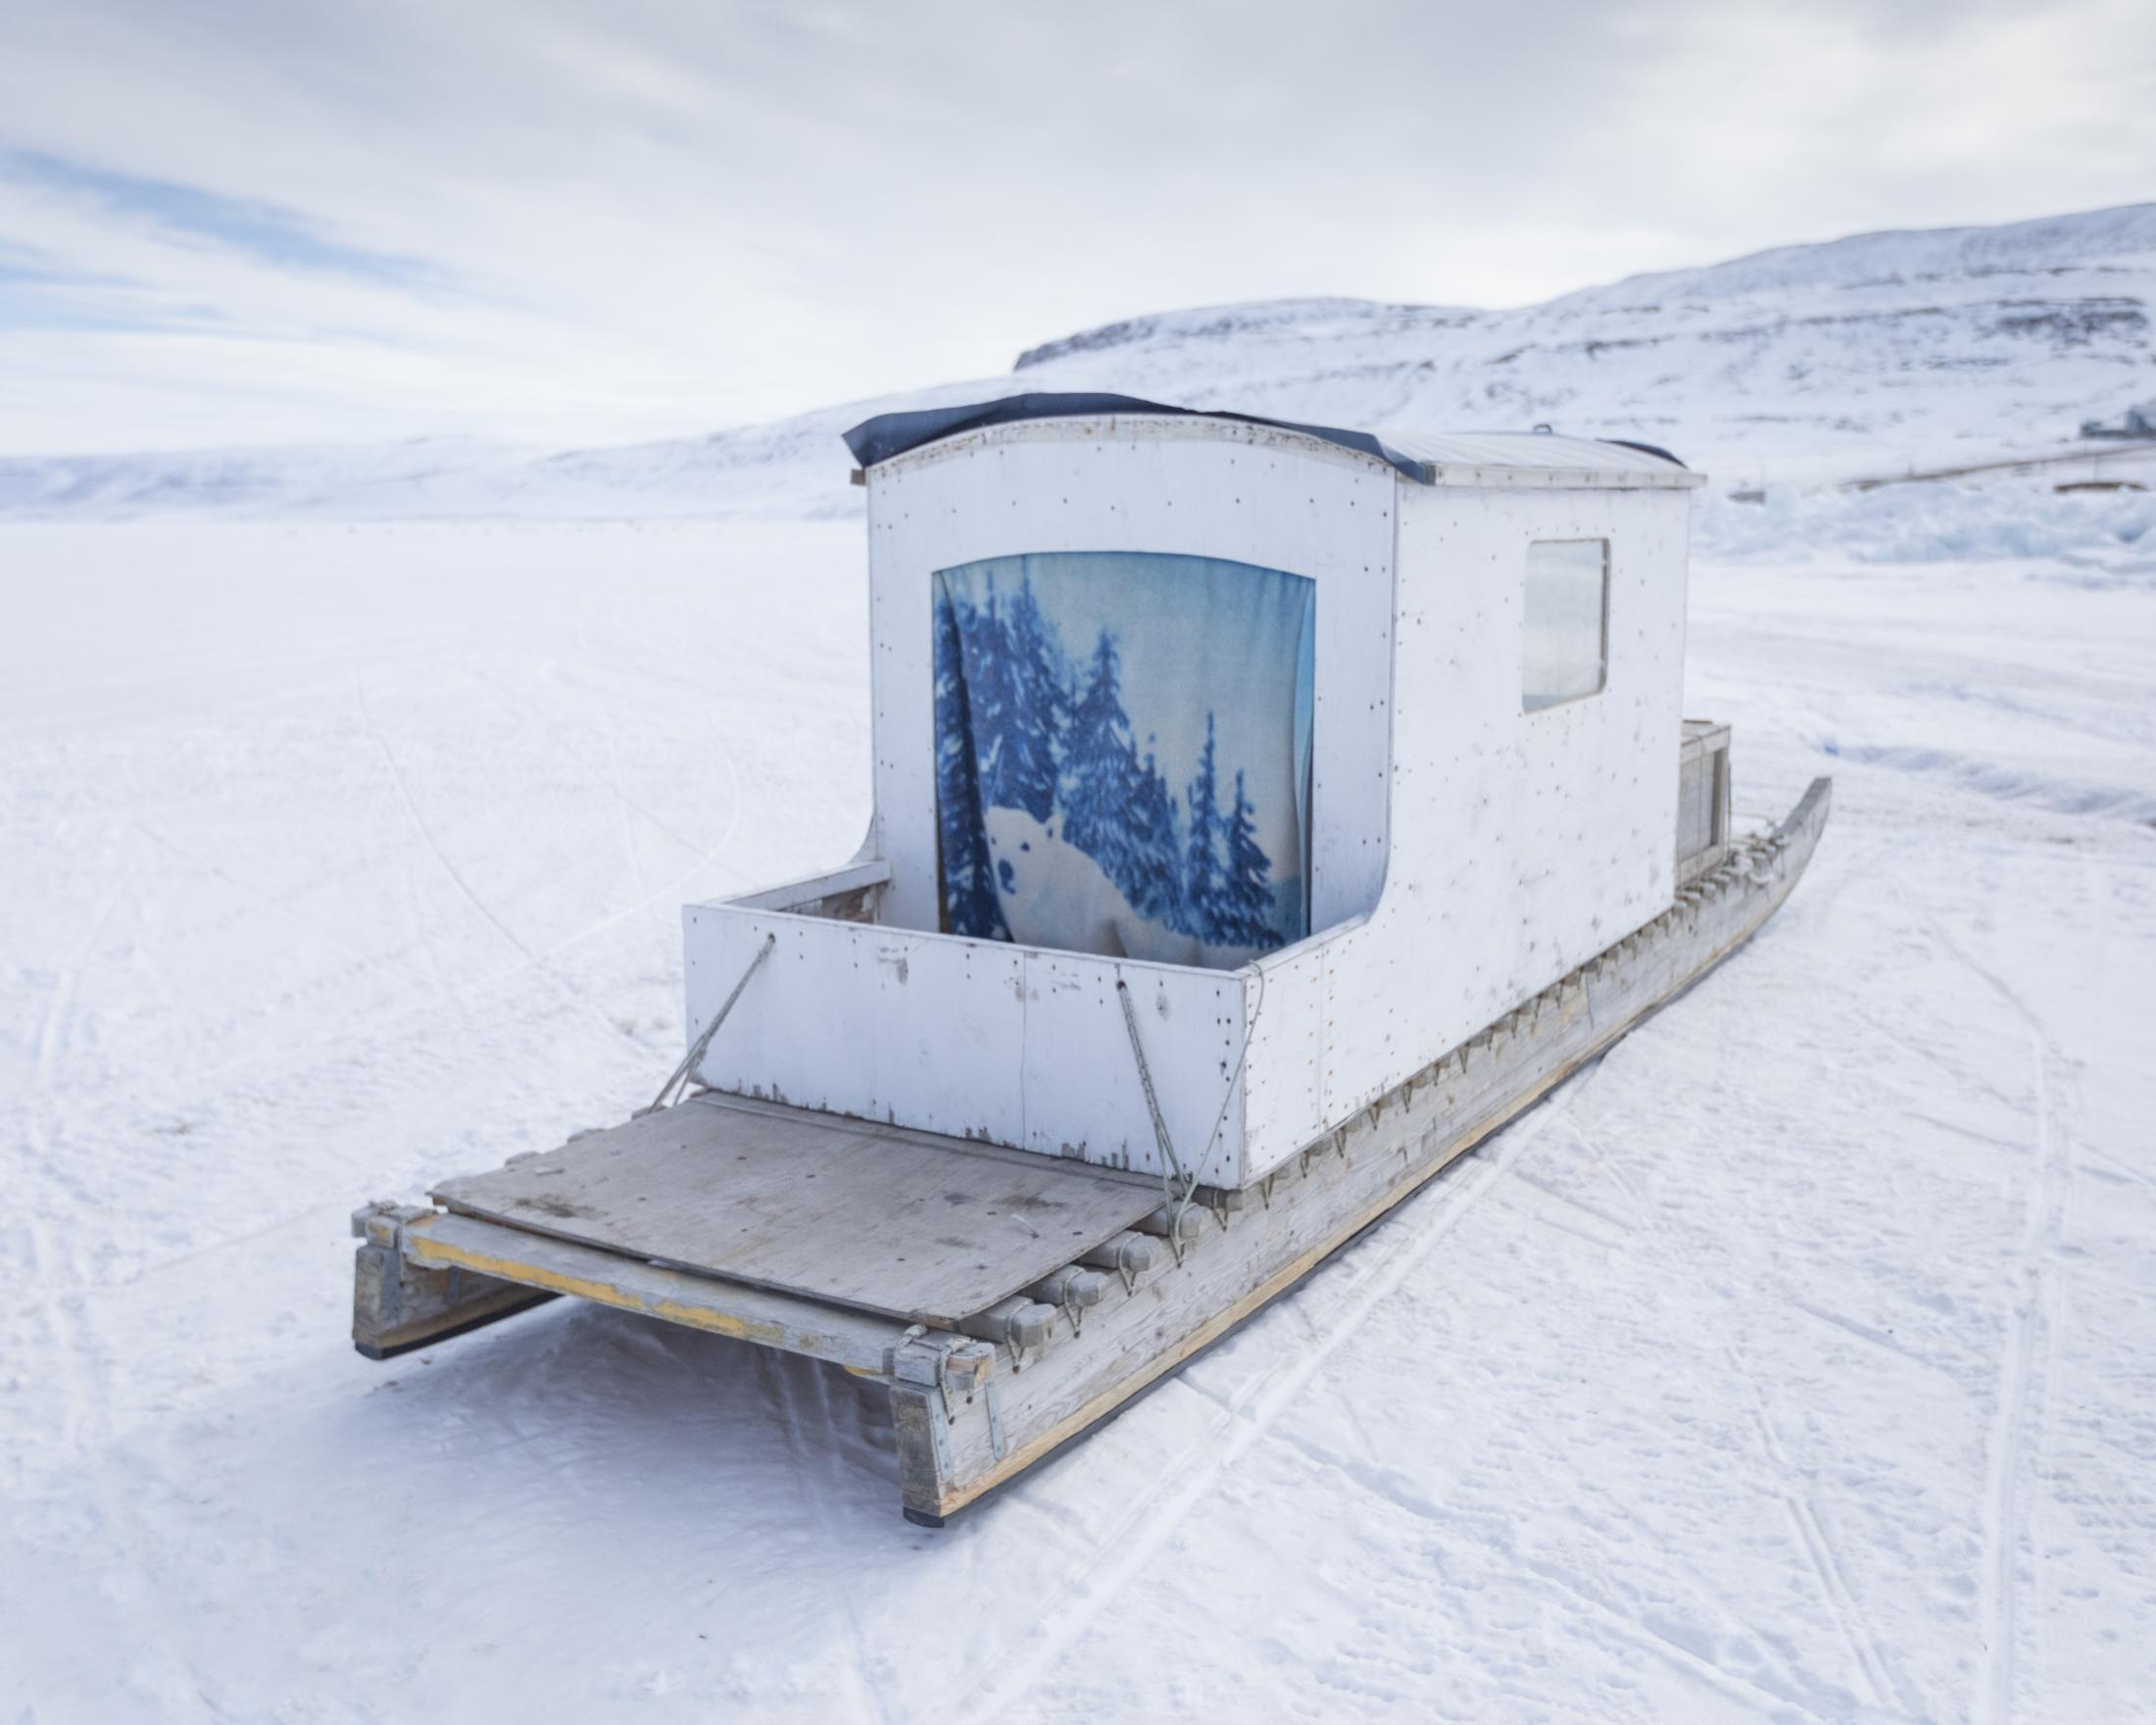 A qamutik, or homemade sled, is prepared for a long snowmobile journey in Arctic Bay, Nunavut.